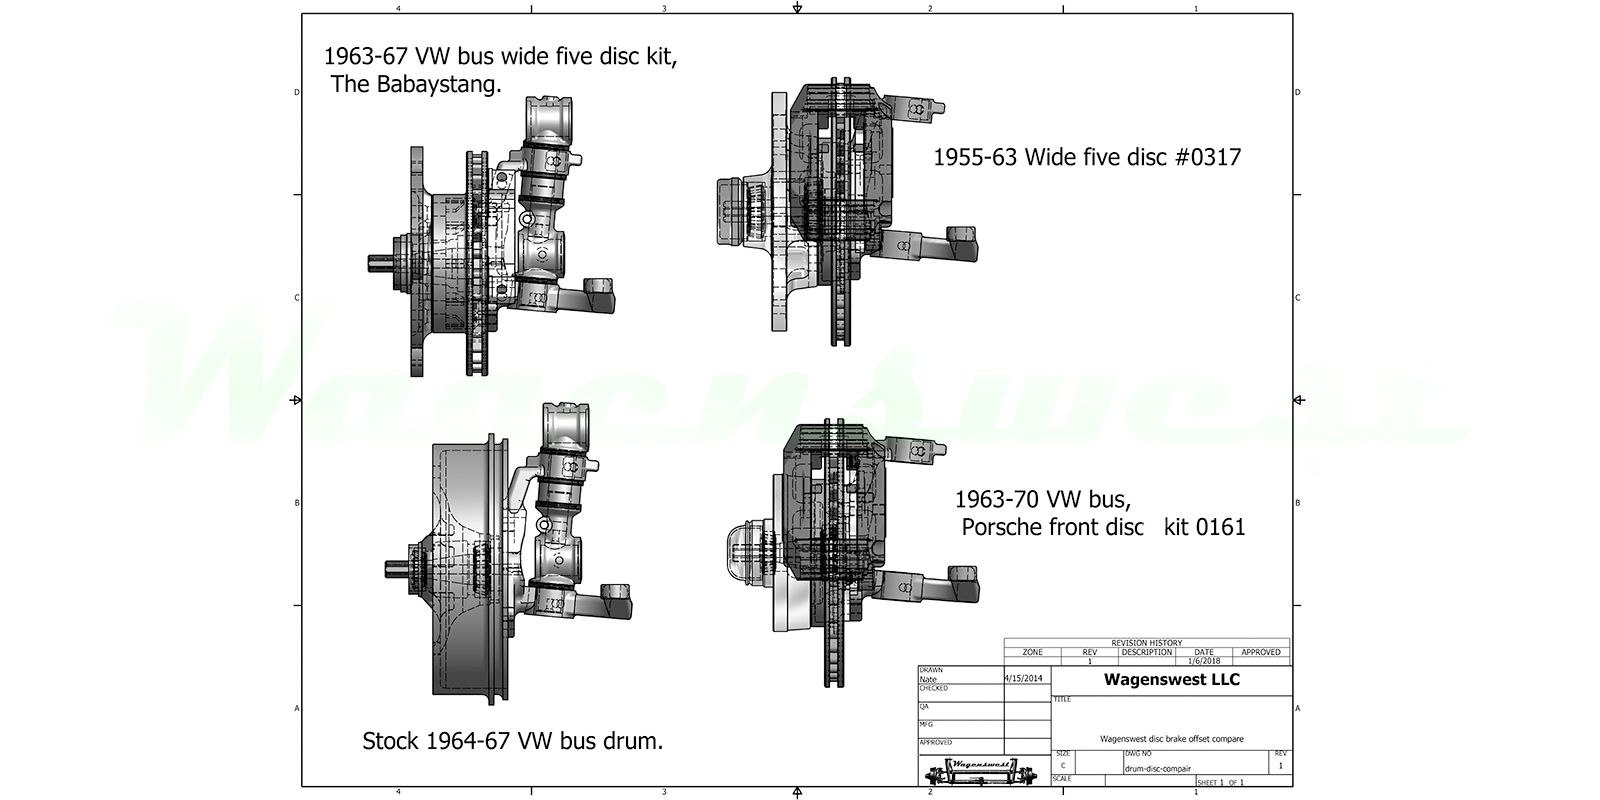 Wagenswest, Custom Volkswagen Bus Suspension, Made in